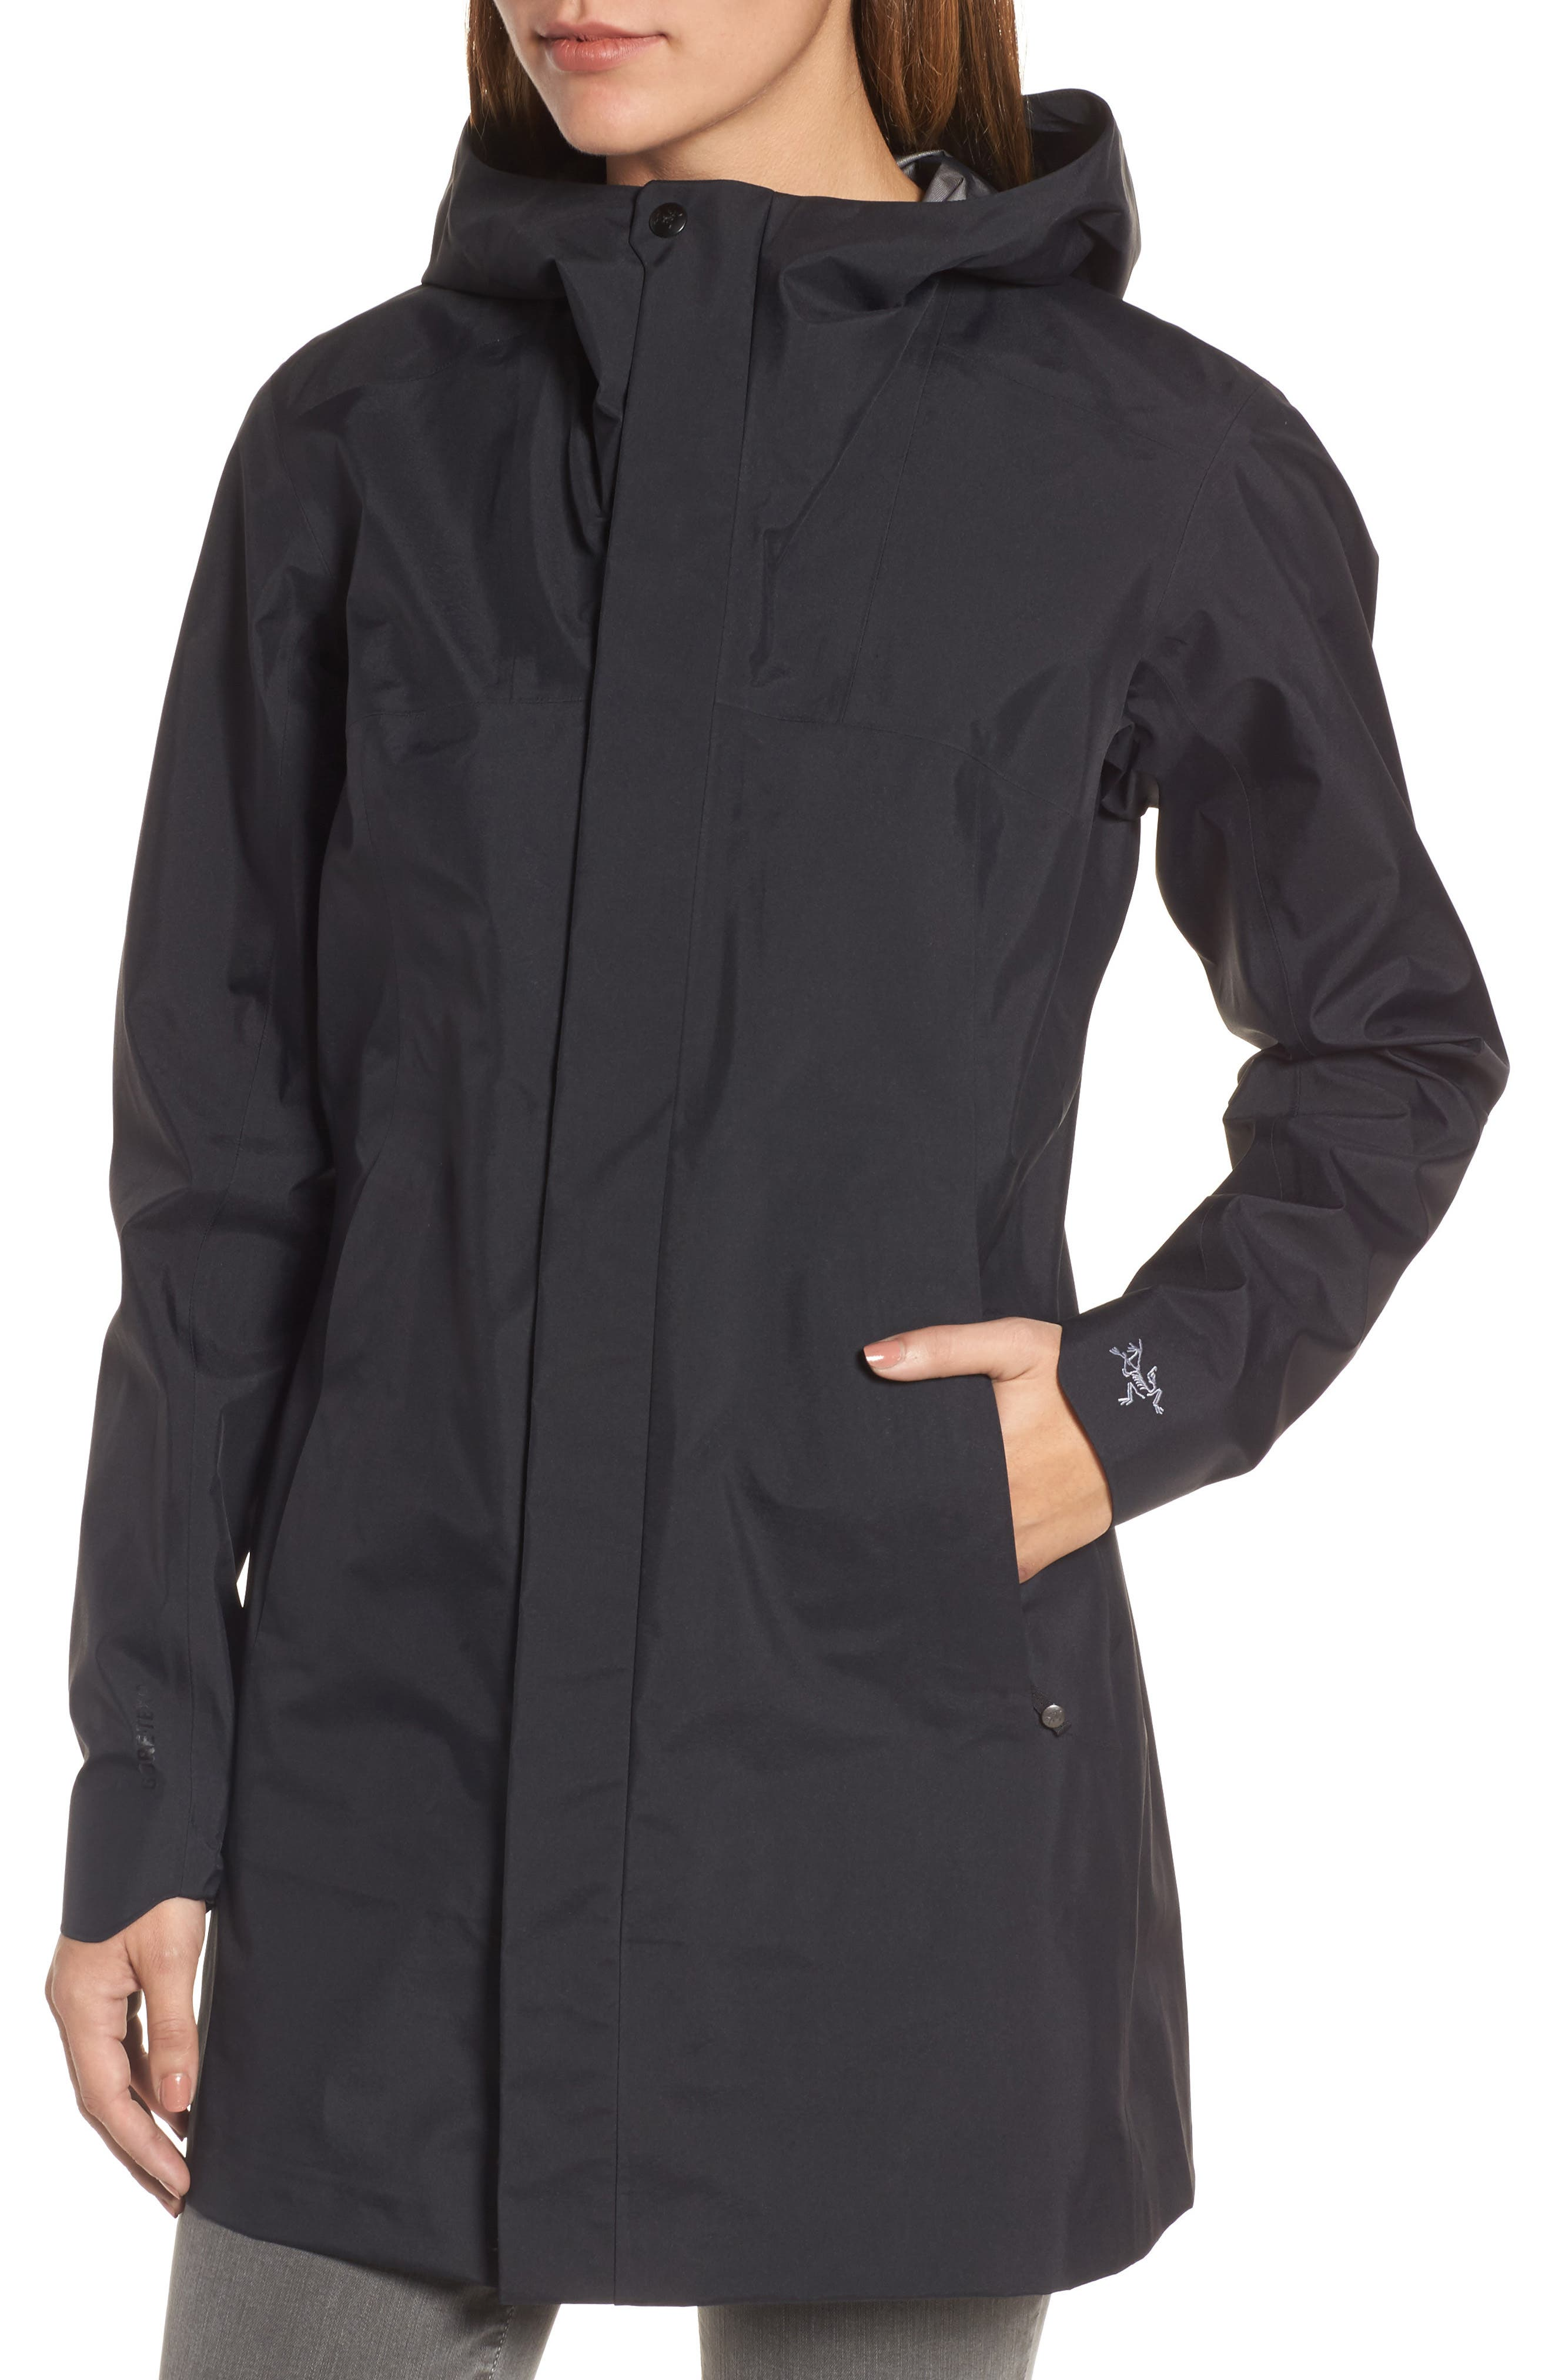 'Codetta' Waterproof Relaxed Fit Gore-Tex<sup>®</sup> 3L Rain Jacket,                             Alternate thumbnail 4, color,                             001